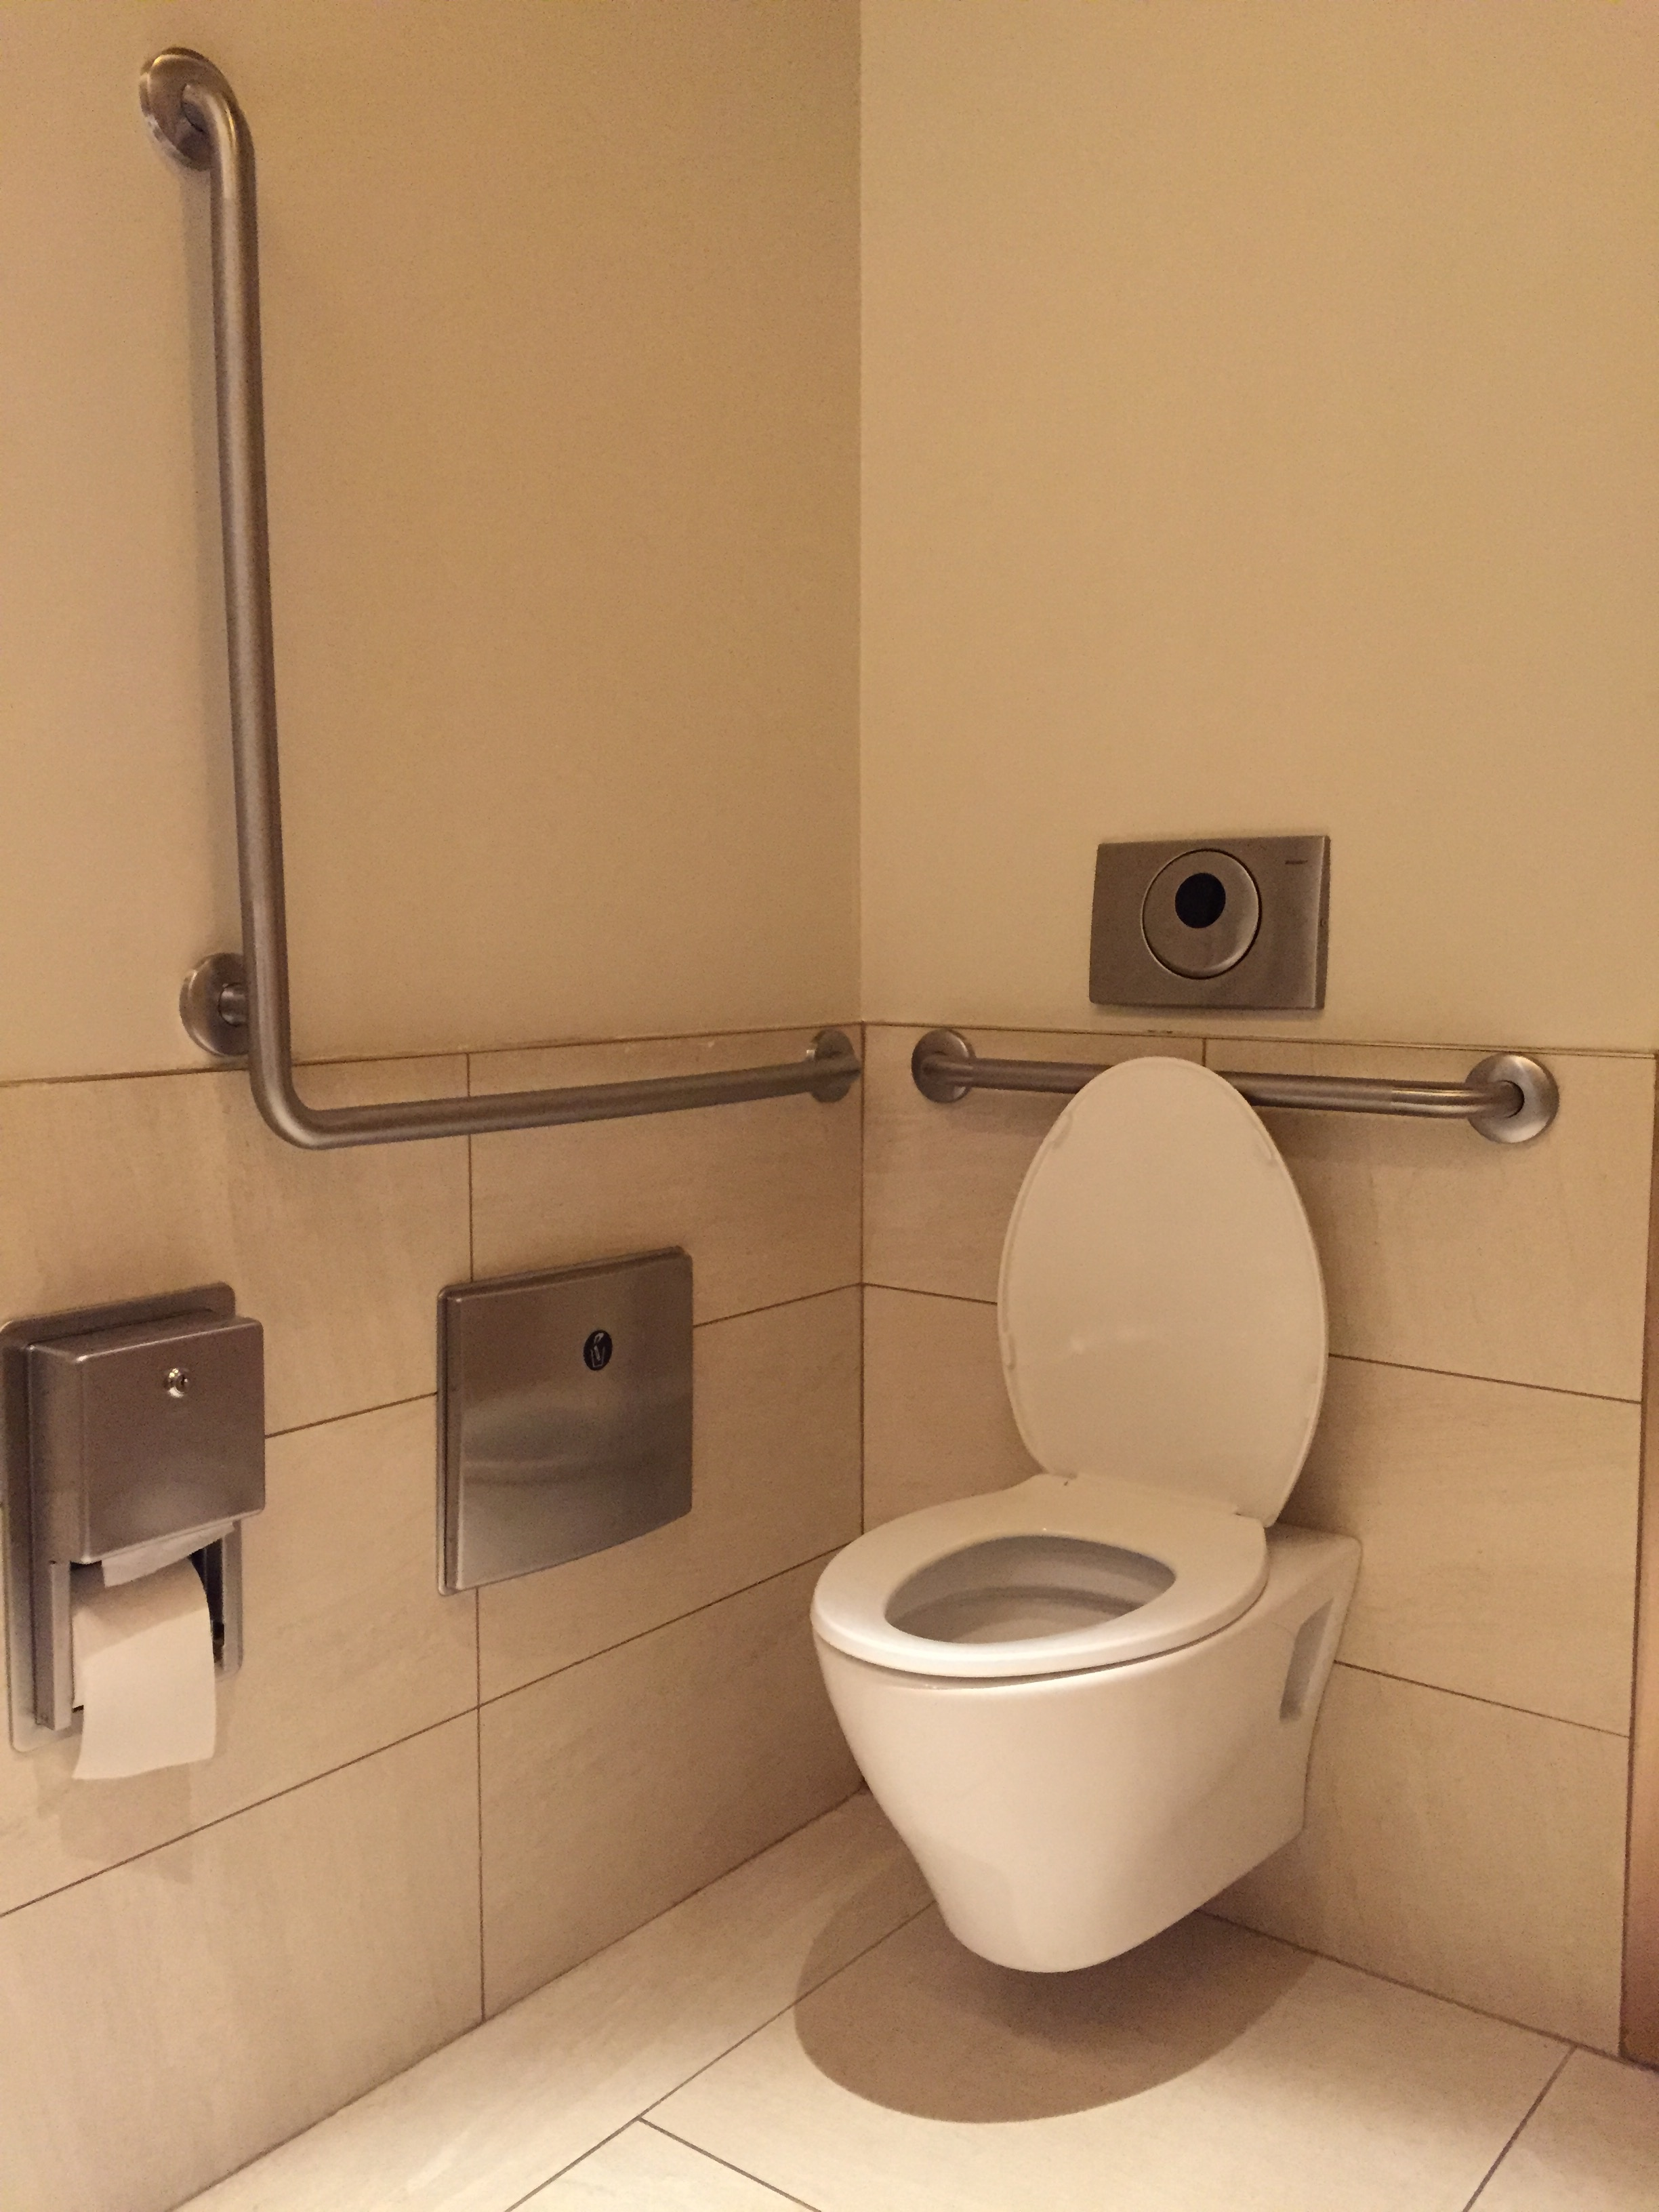 Picture of accessible washroom. L-shaped grab bar featured.